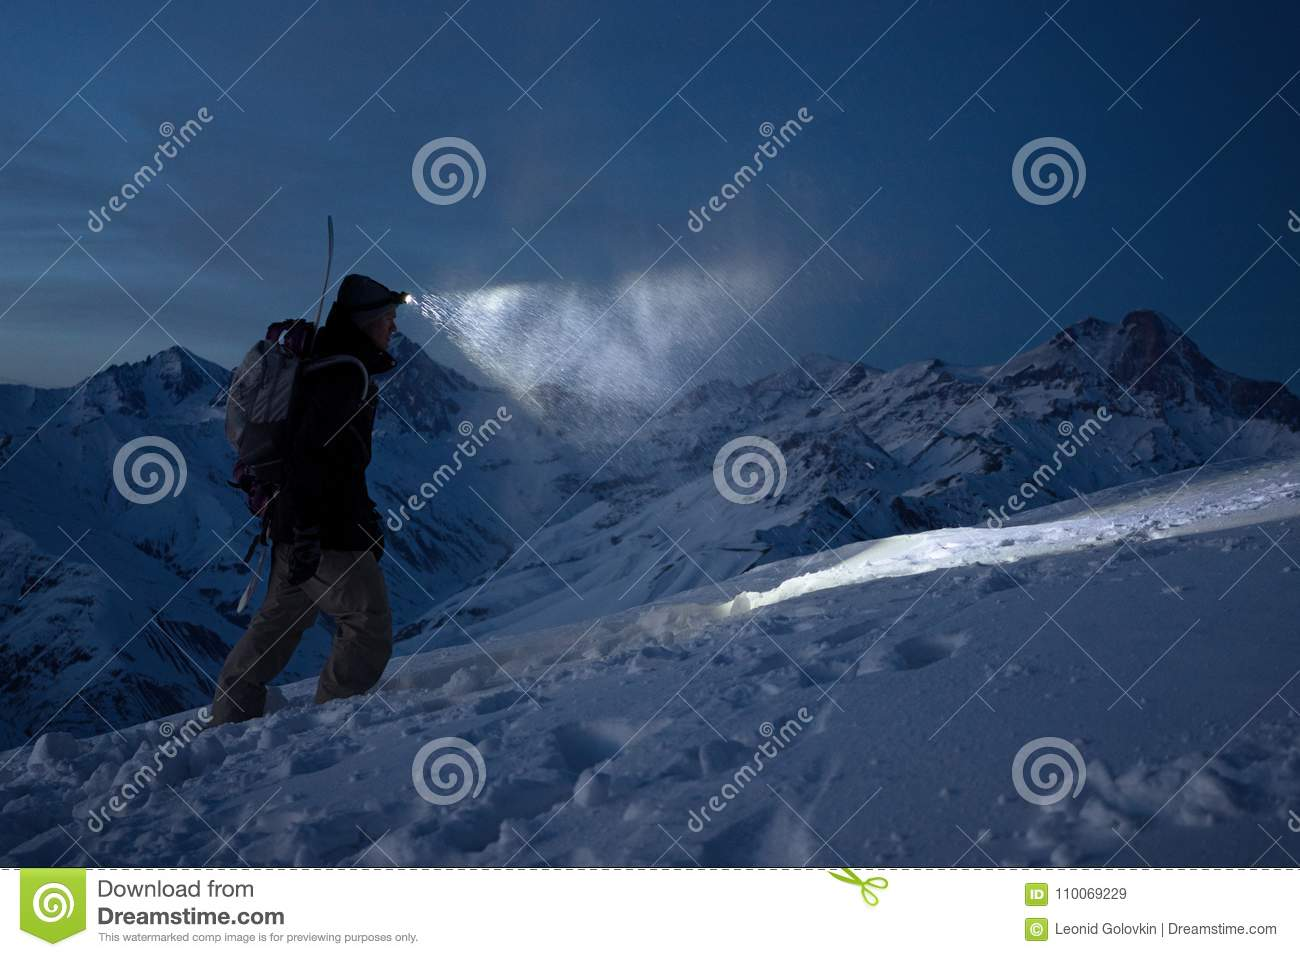 Brave night explorer climbs on high snowy mountains and lights the way with a headlamp. Extreme expedition. Ski tour. Snowboarder